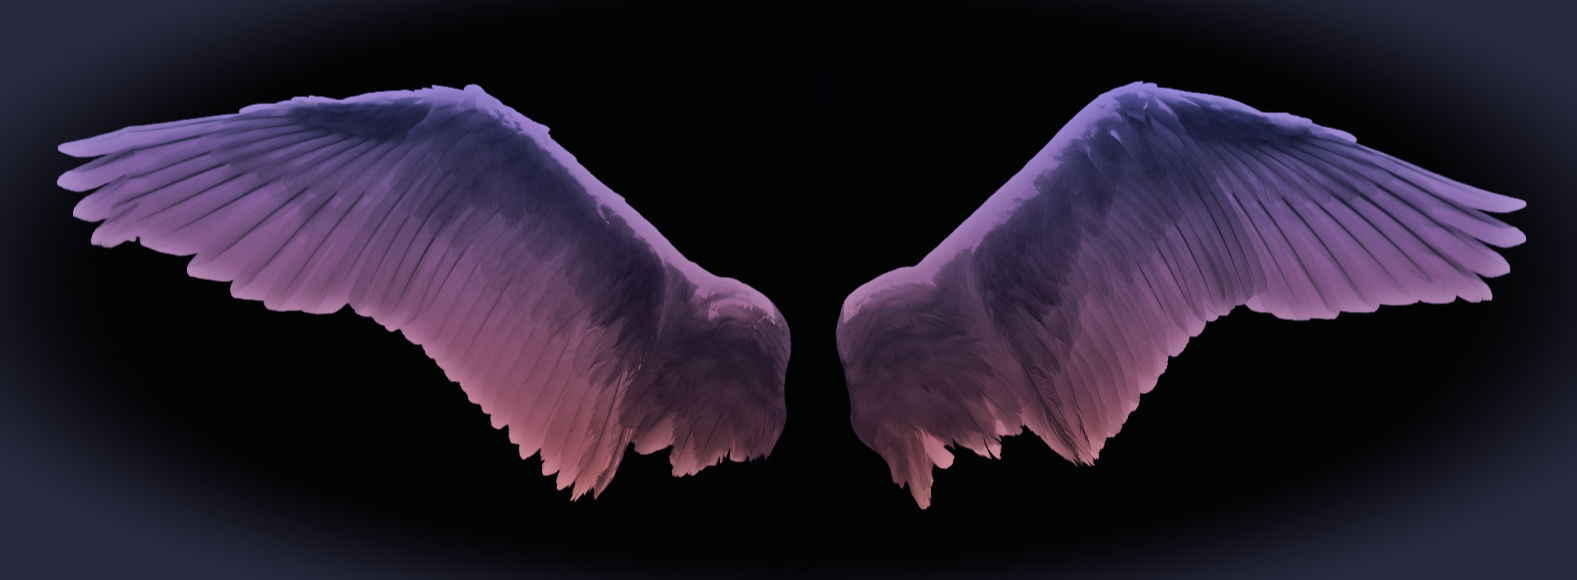 Angels, Maybe – New Starts, Plans, Ideas.